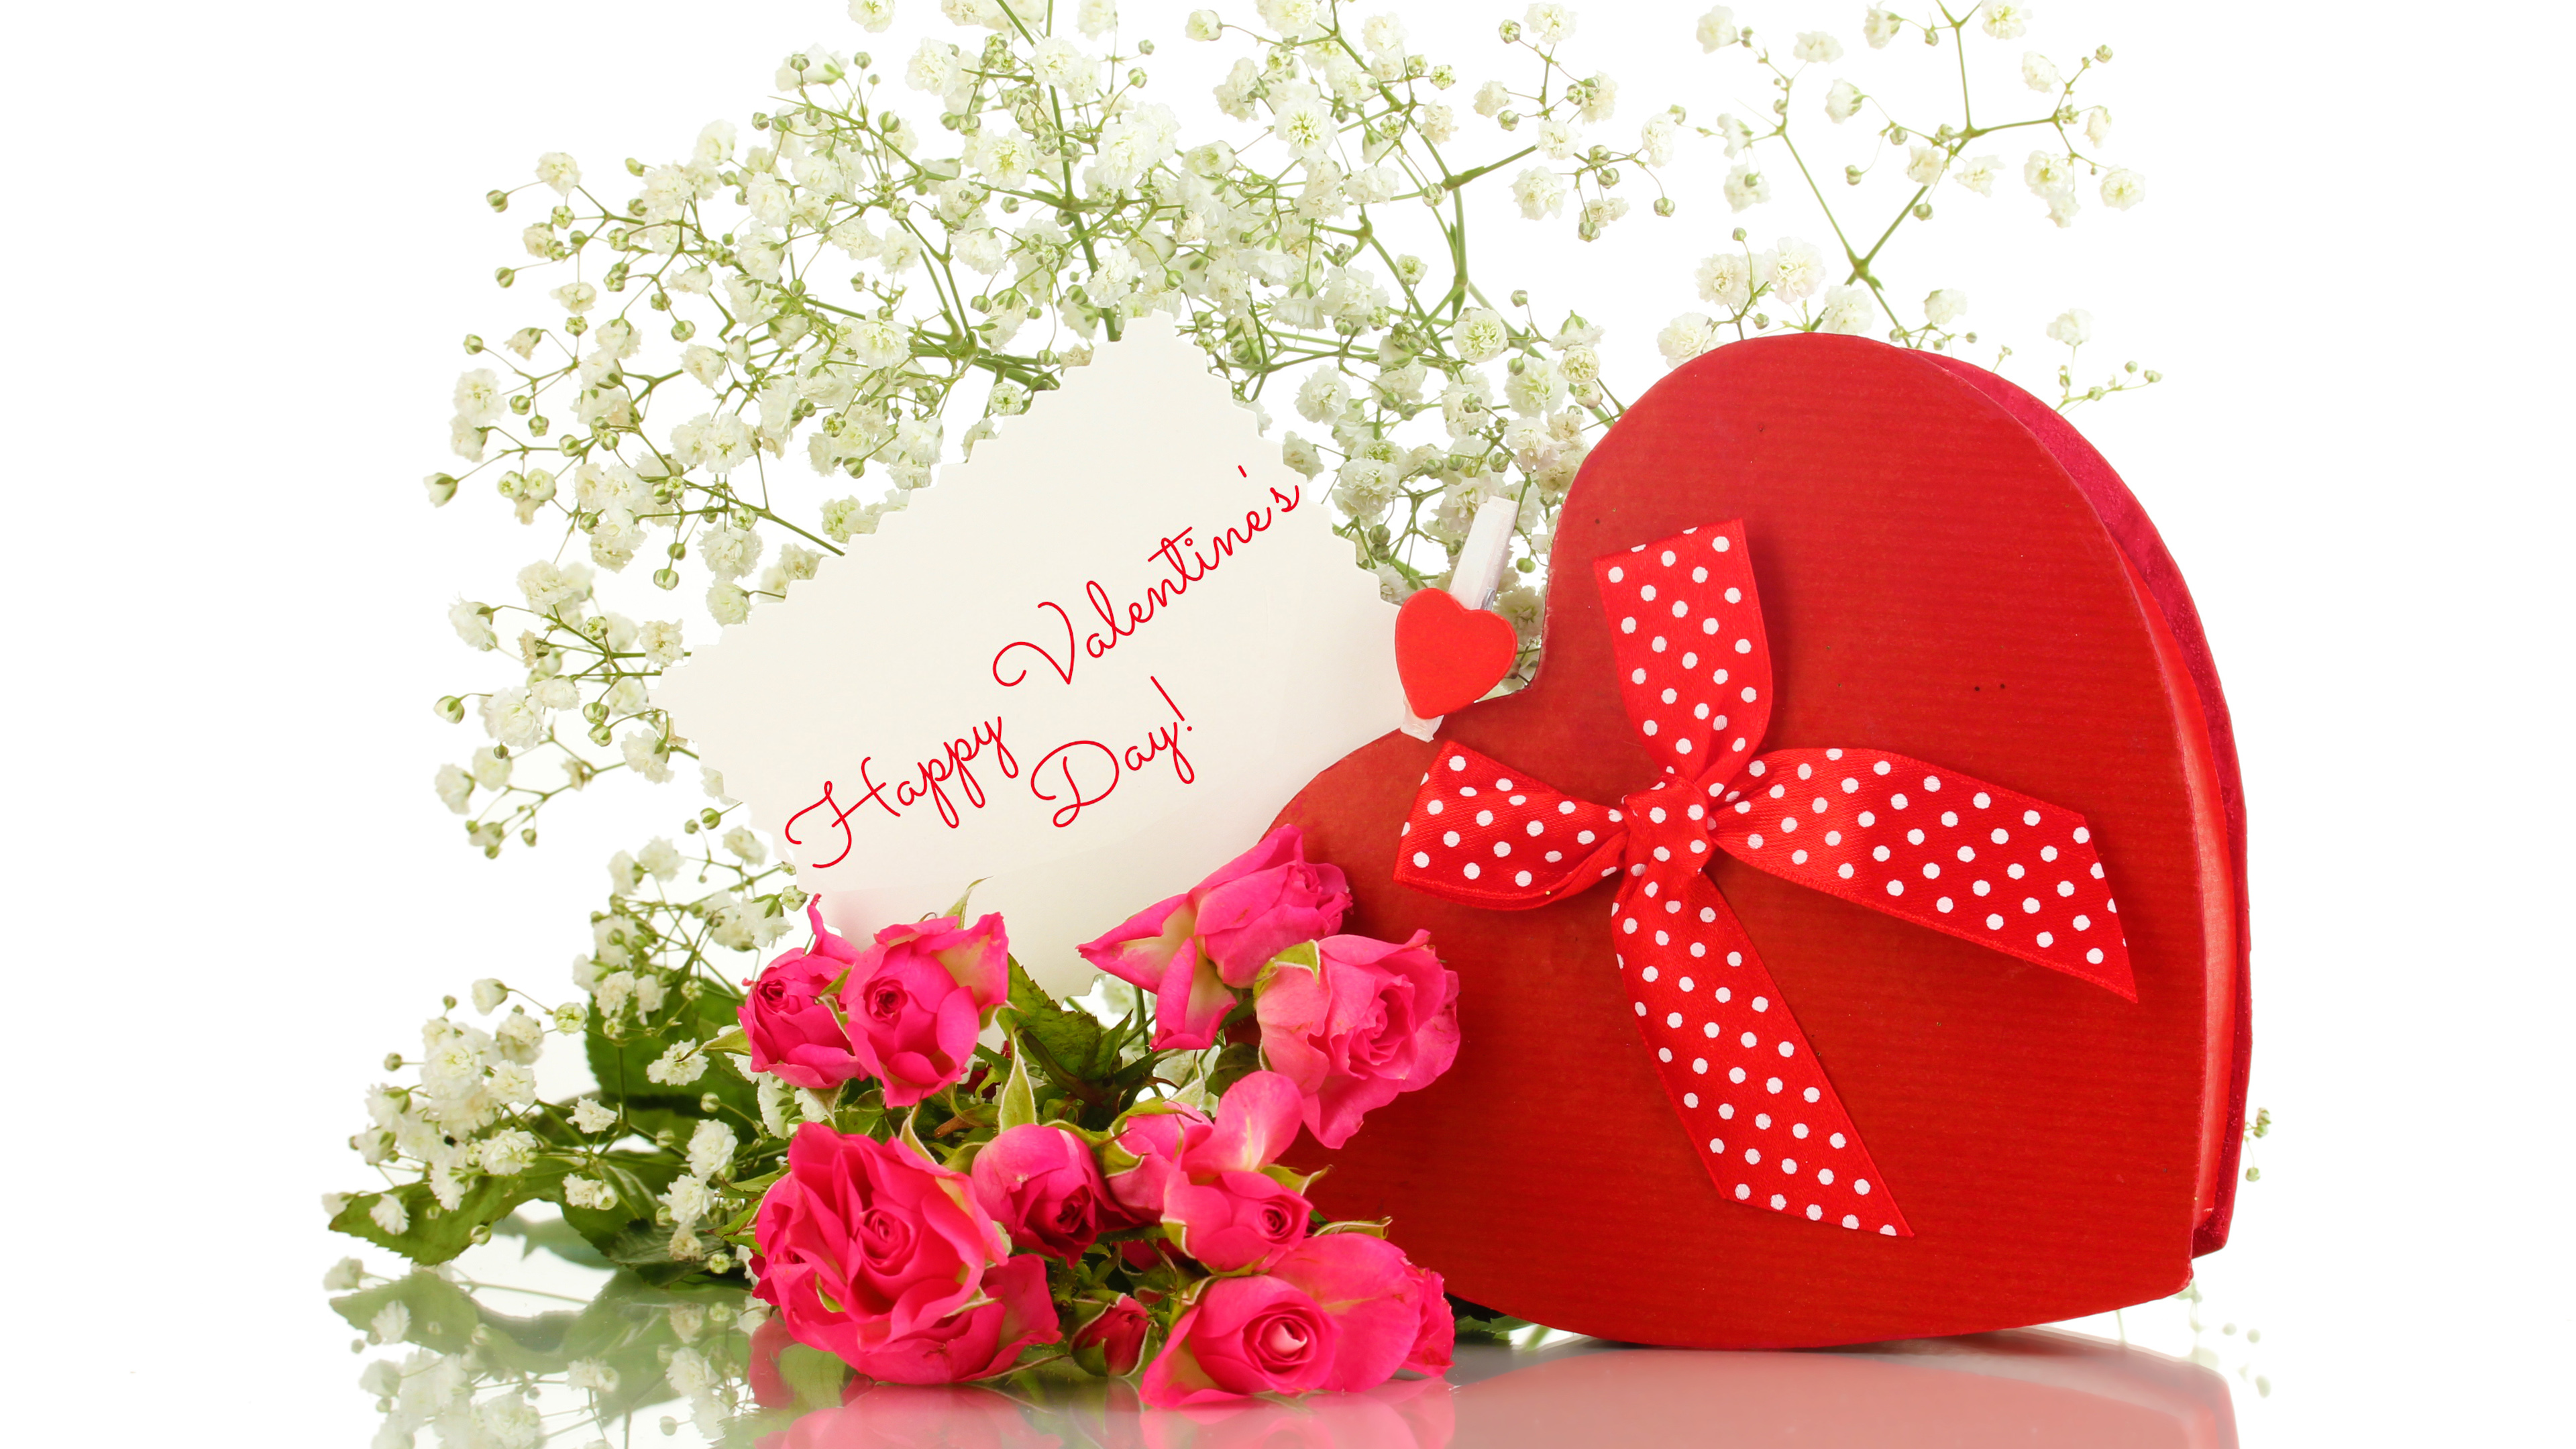 Happy Valentines Day Giftbox and Flowers 4k Wallpaper